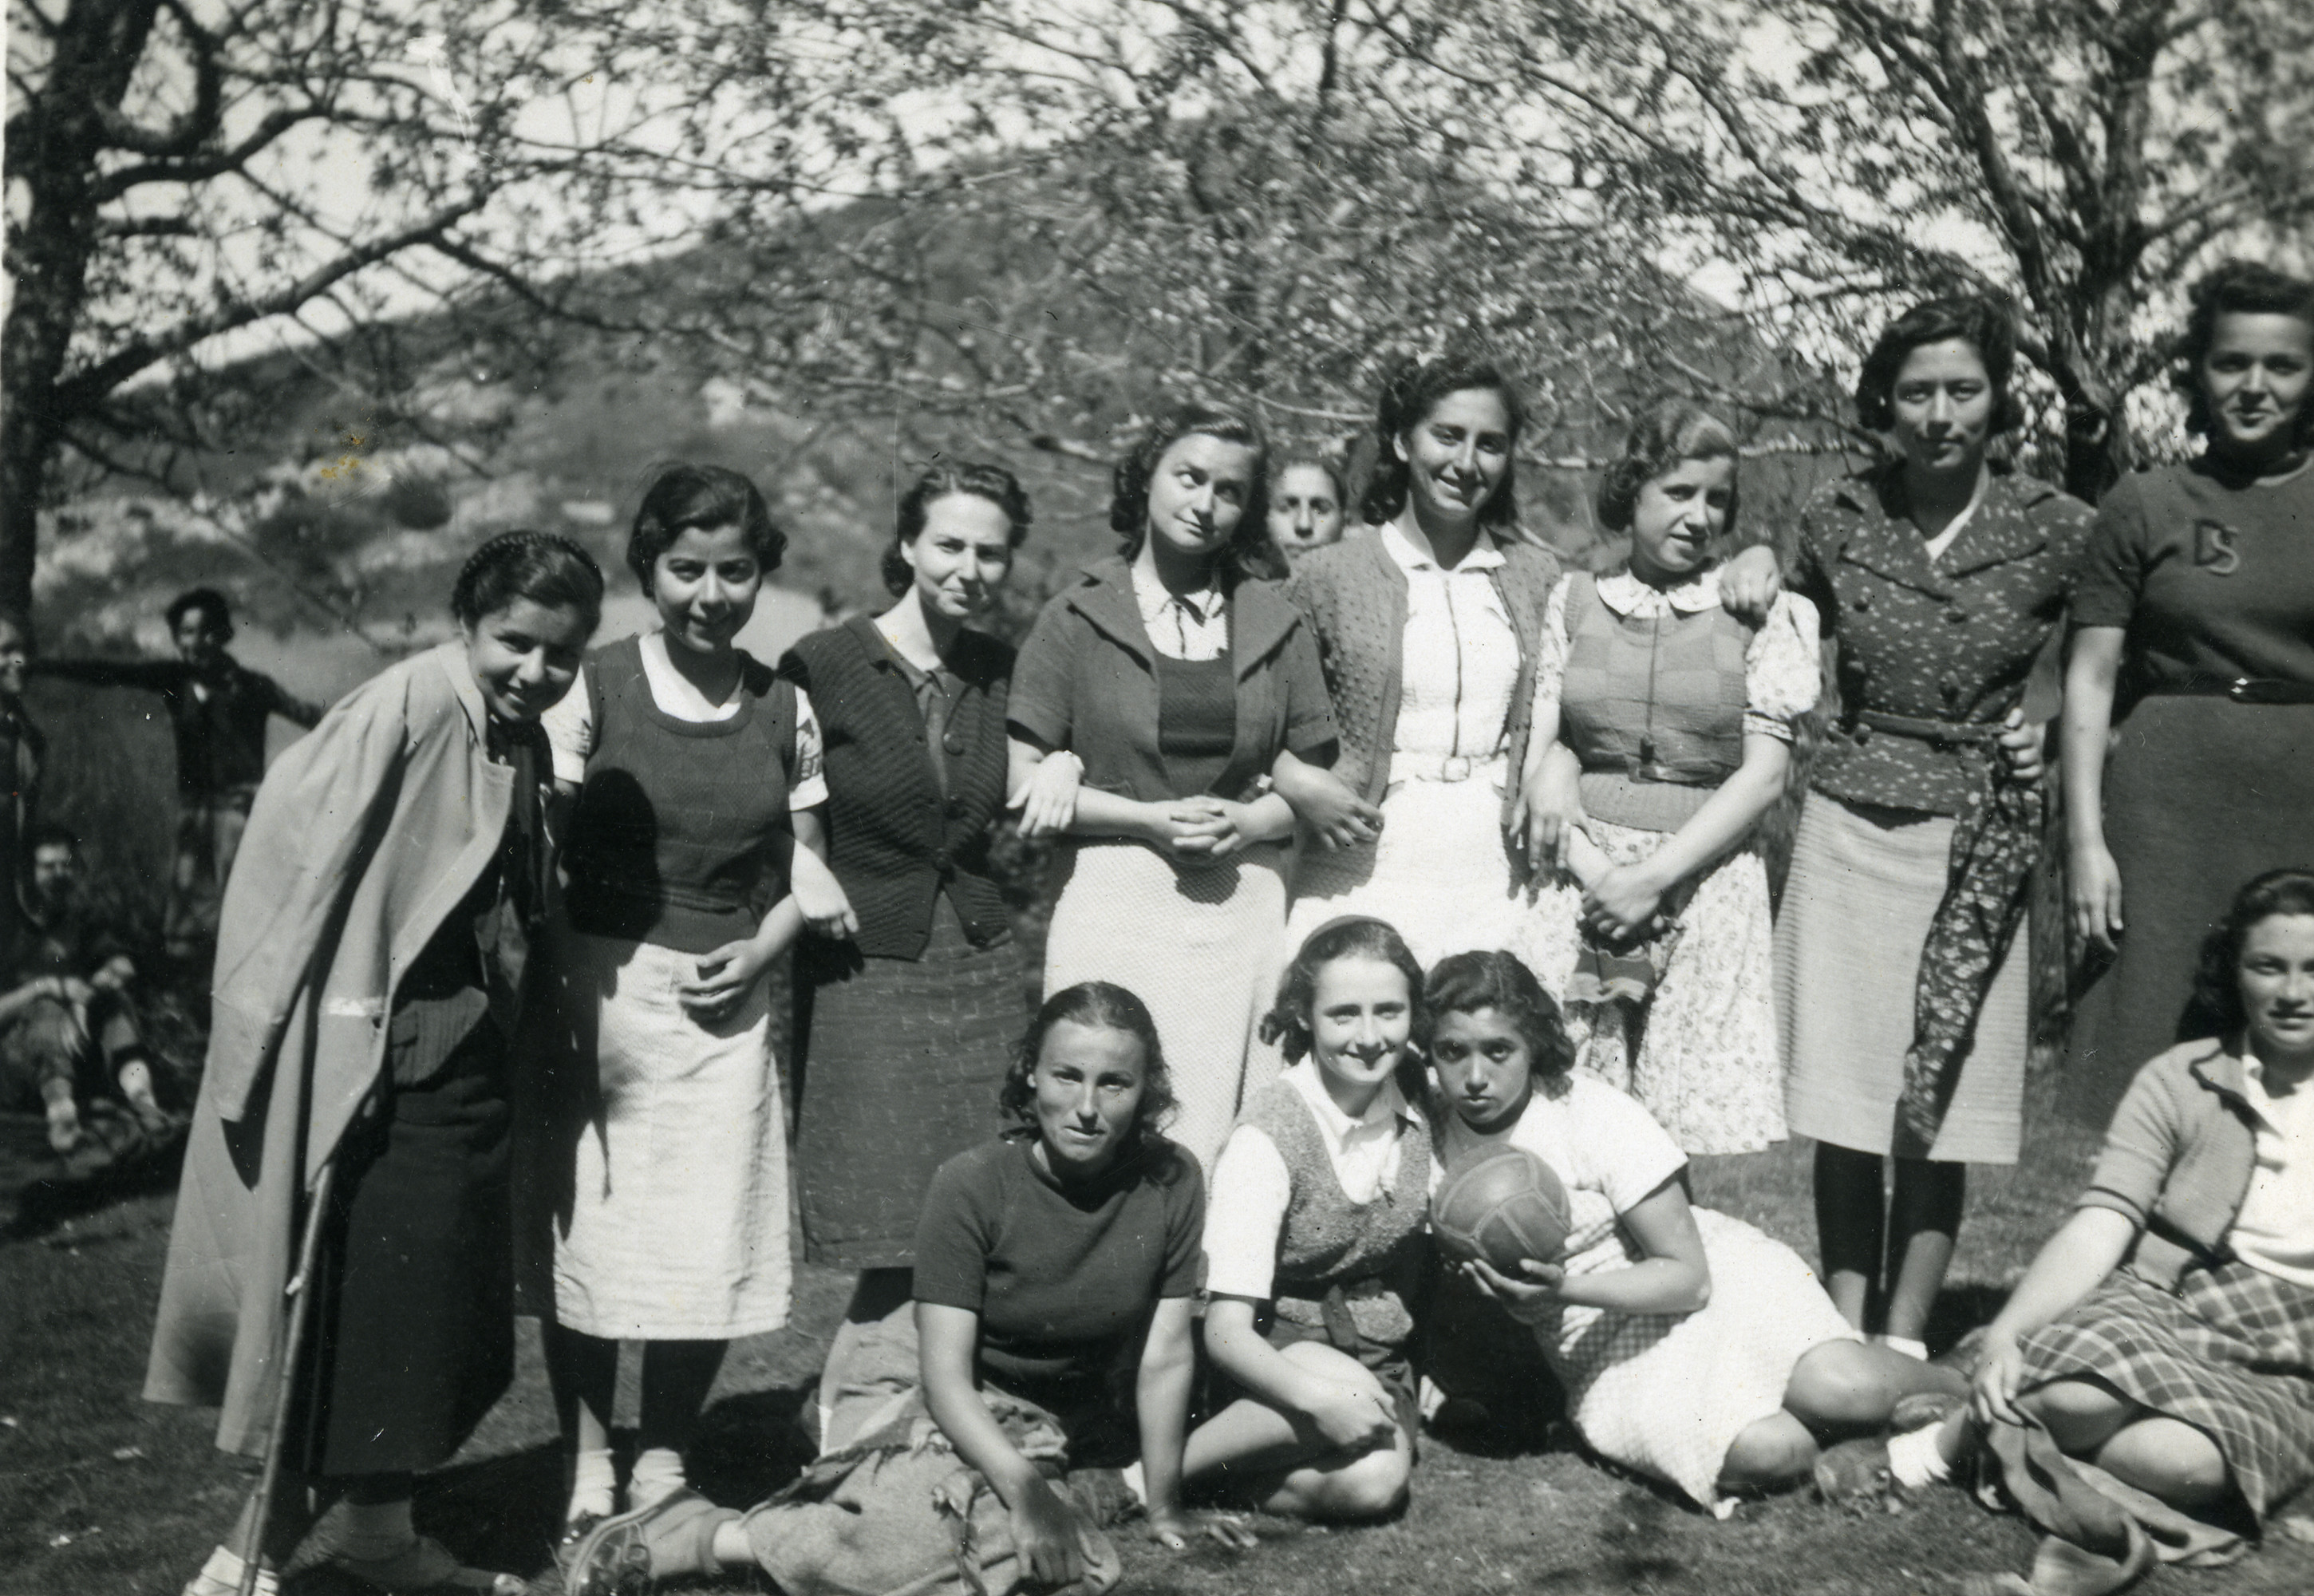 Group of students having a picnic with the athletic club in Salonika, on May 1st 1939.  Among those pictured is Jenny Ezratty, front row, furthest to the right.